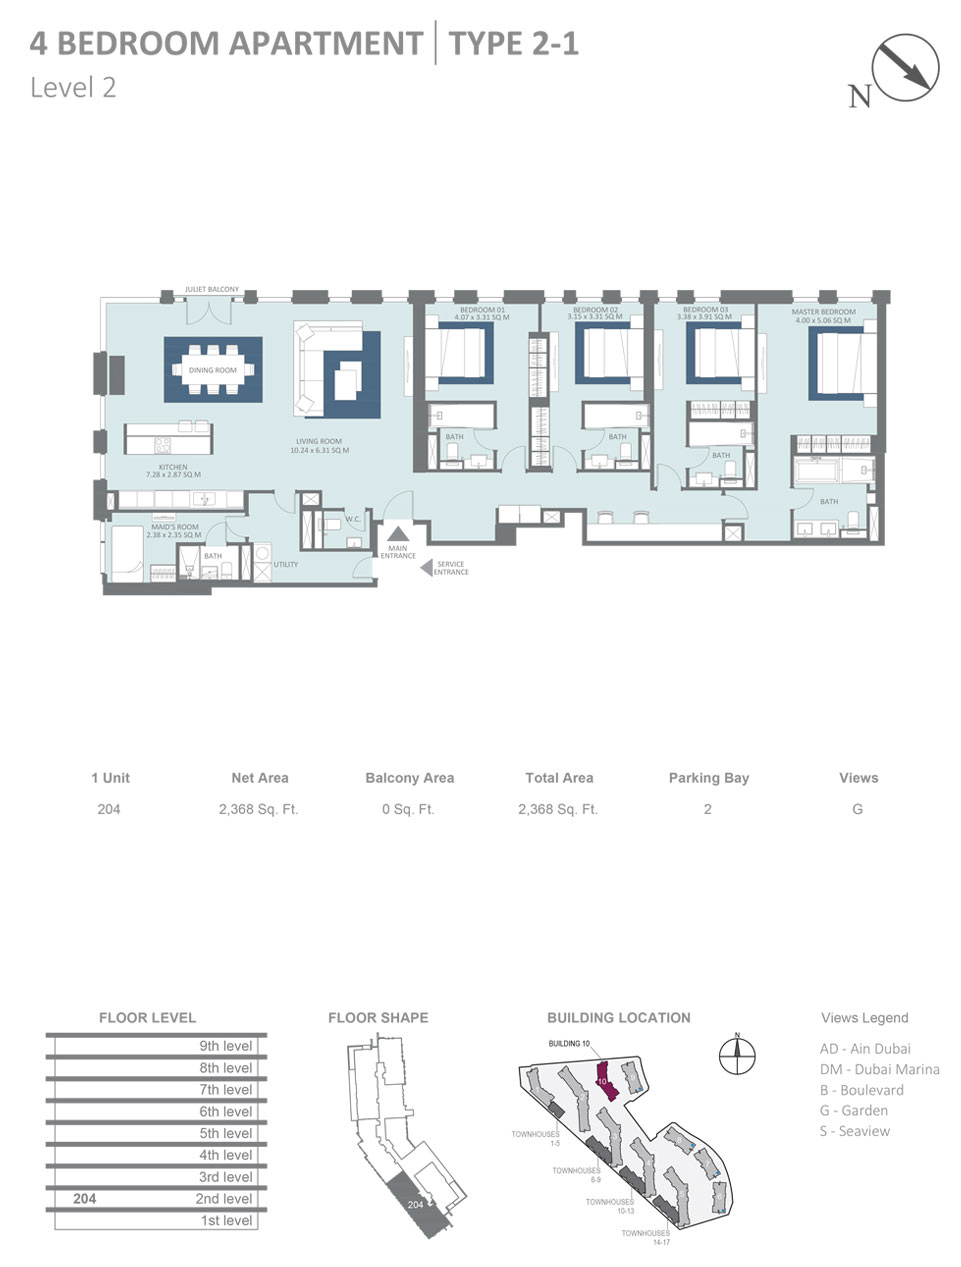 Building 10 - 4 Bedroom Apartment Type 2 - 1, Level 2, Size 2368  sq. ft.